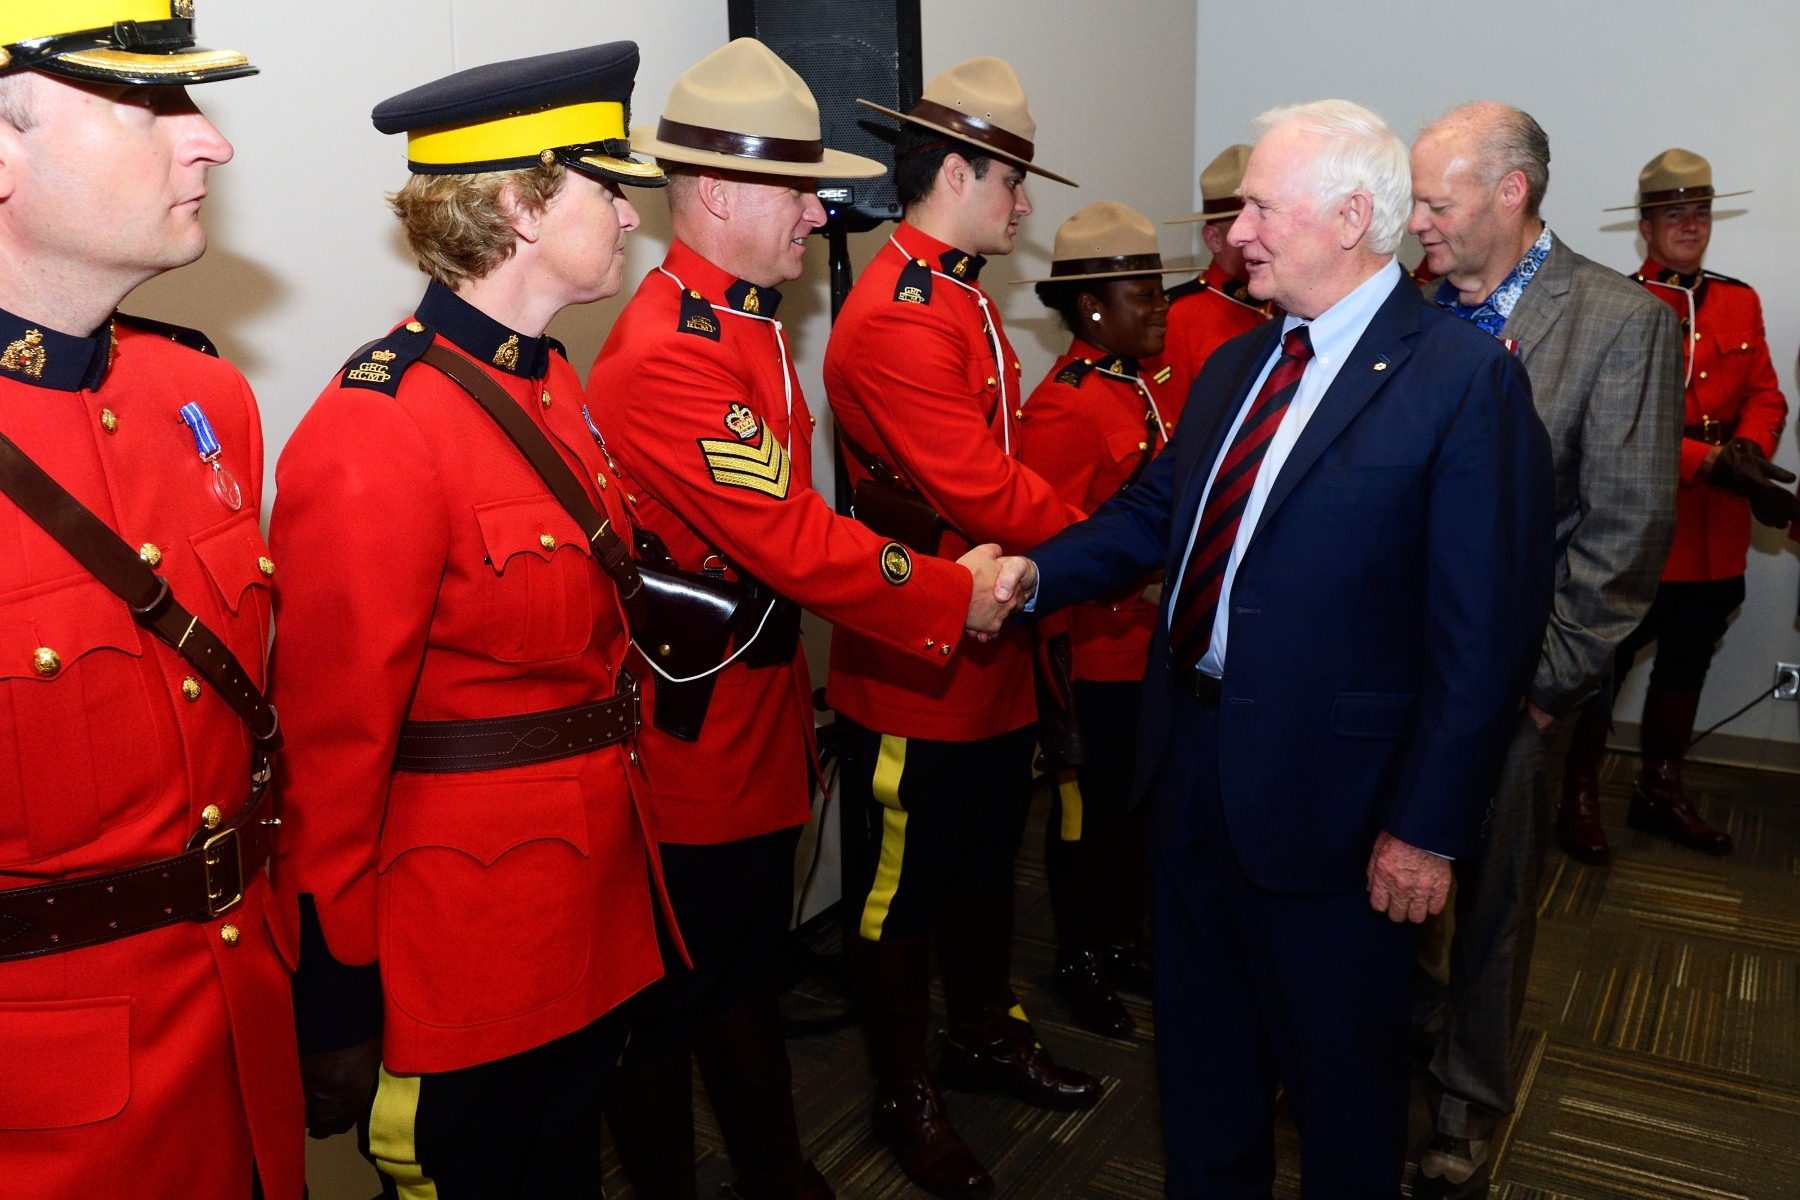 The Governor General personally thanked RCMP officers for their outstanding work.